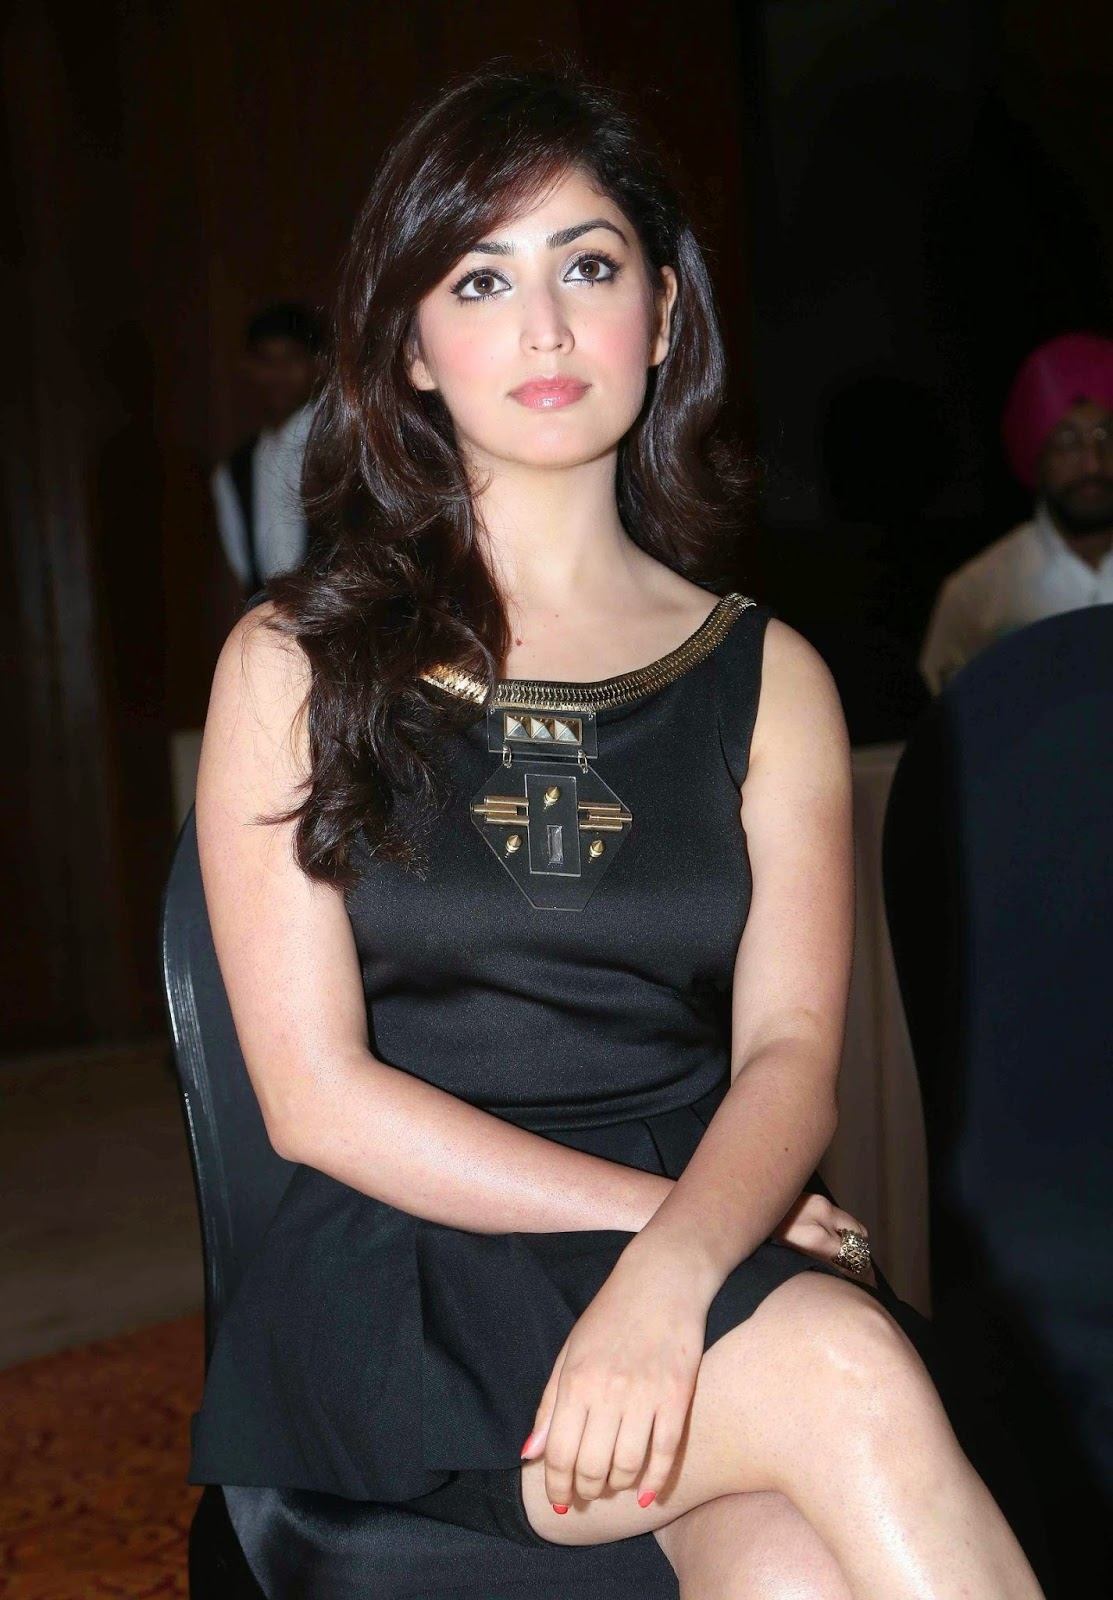 High Quality Bollywood Celebrity Pictures: Yami Gautam ...